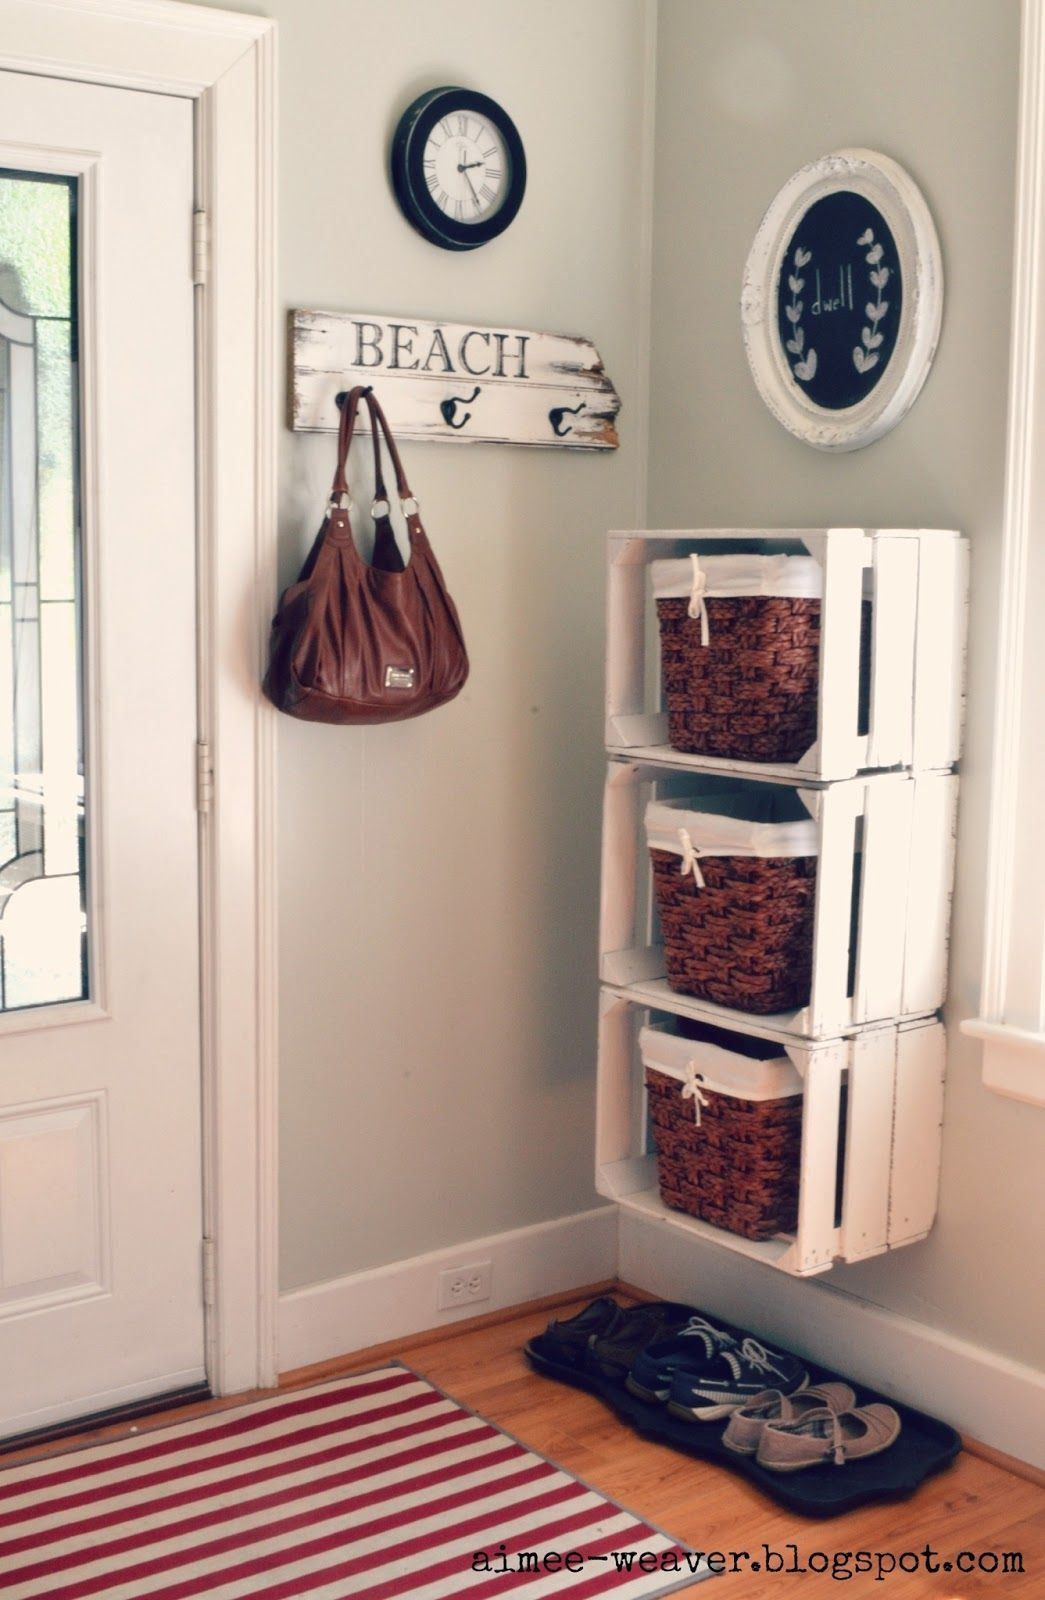 10 Ways to Re-Use Wooden Crates - Megan Brooke Handmade